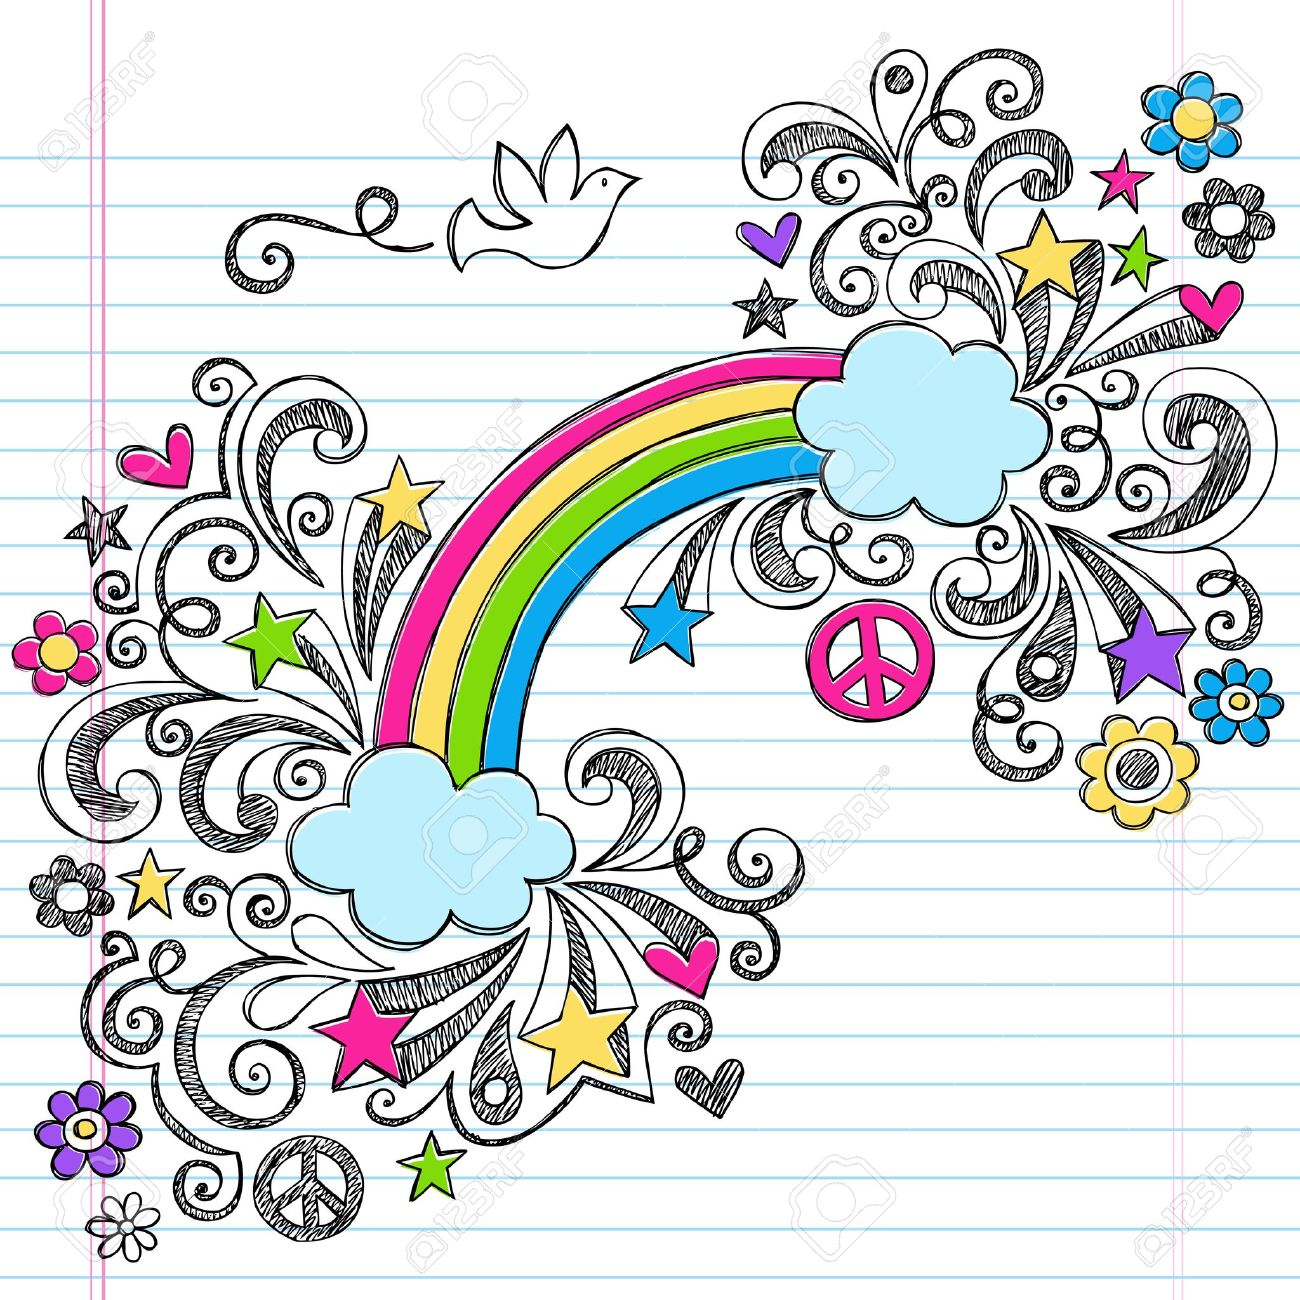 Rainbow and Peace Dove Sketchy Back to School Notebook Doodles Hand-Drawn Vector Illustration Design Element on Lined Sketchbook Paper Background Stock Vector - 15412234